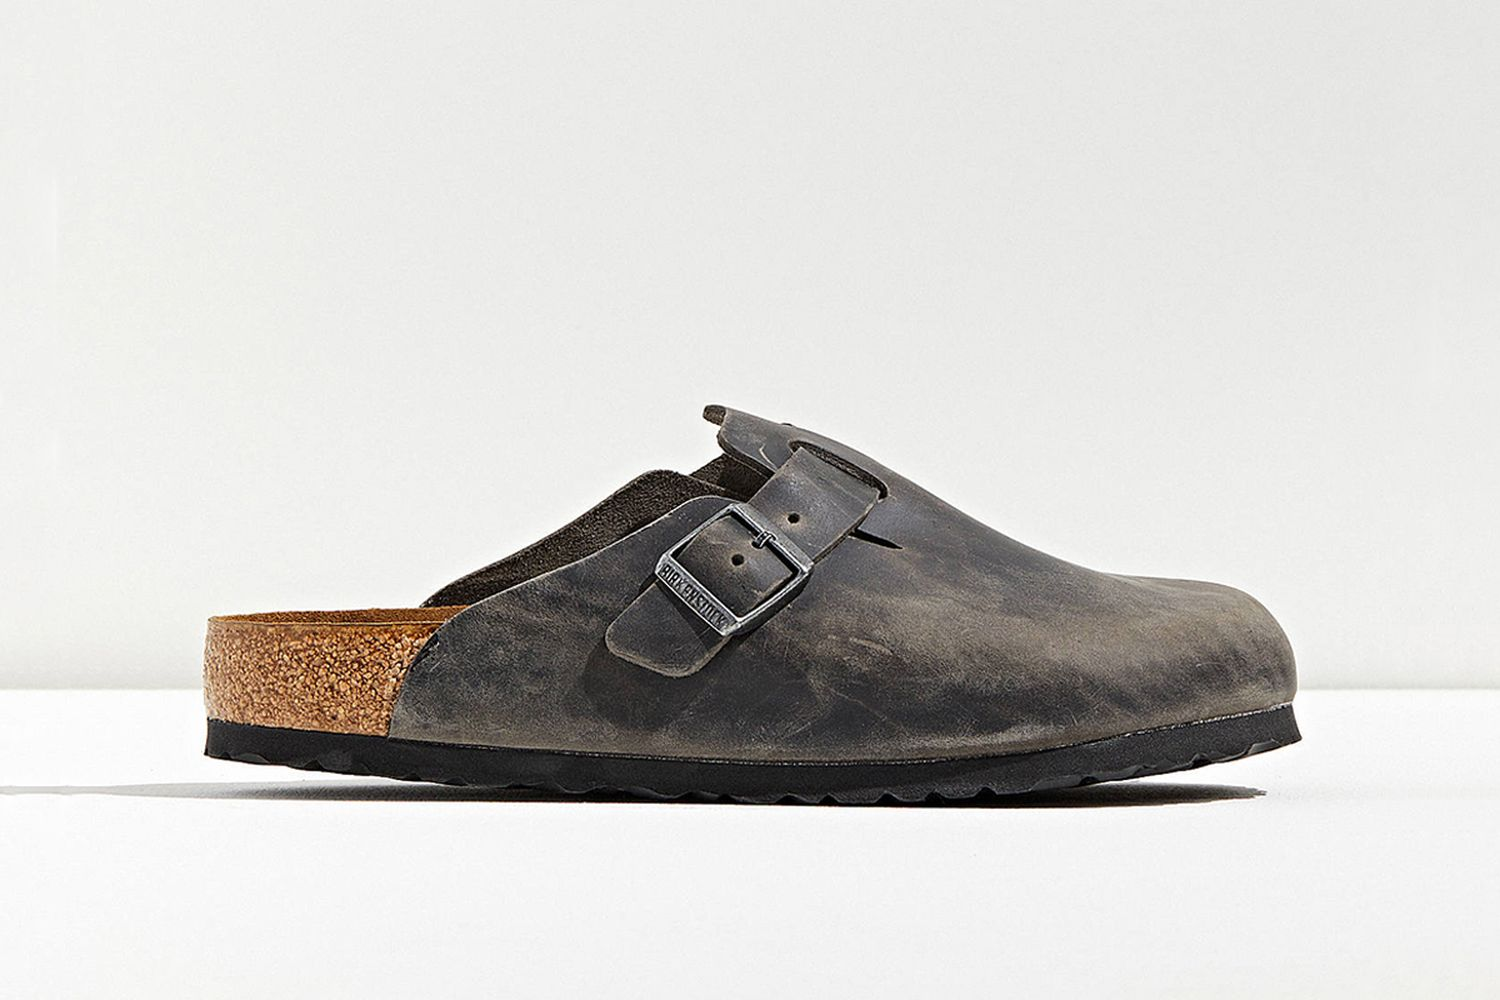 Boston Soft Footbed Oiled Leather Clog